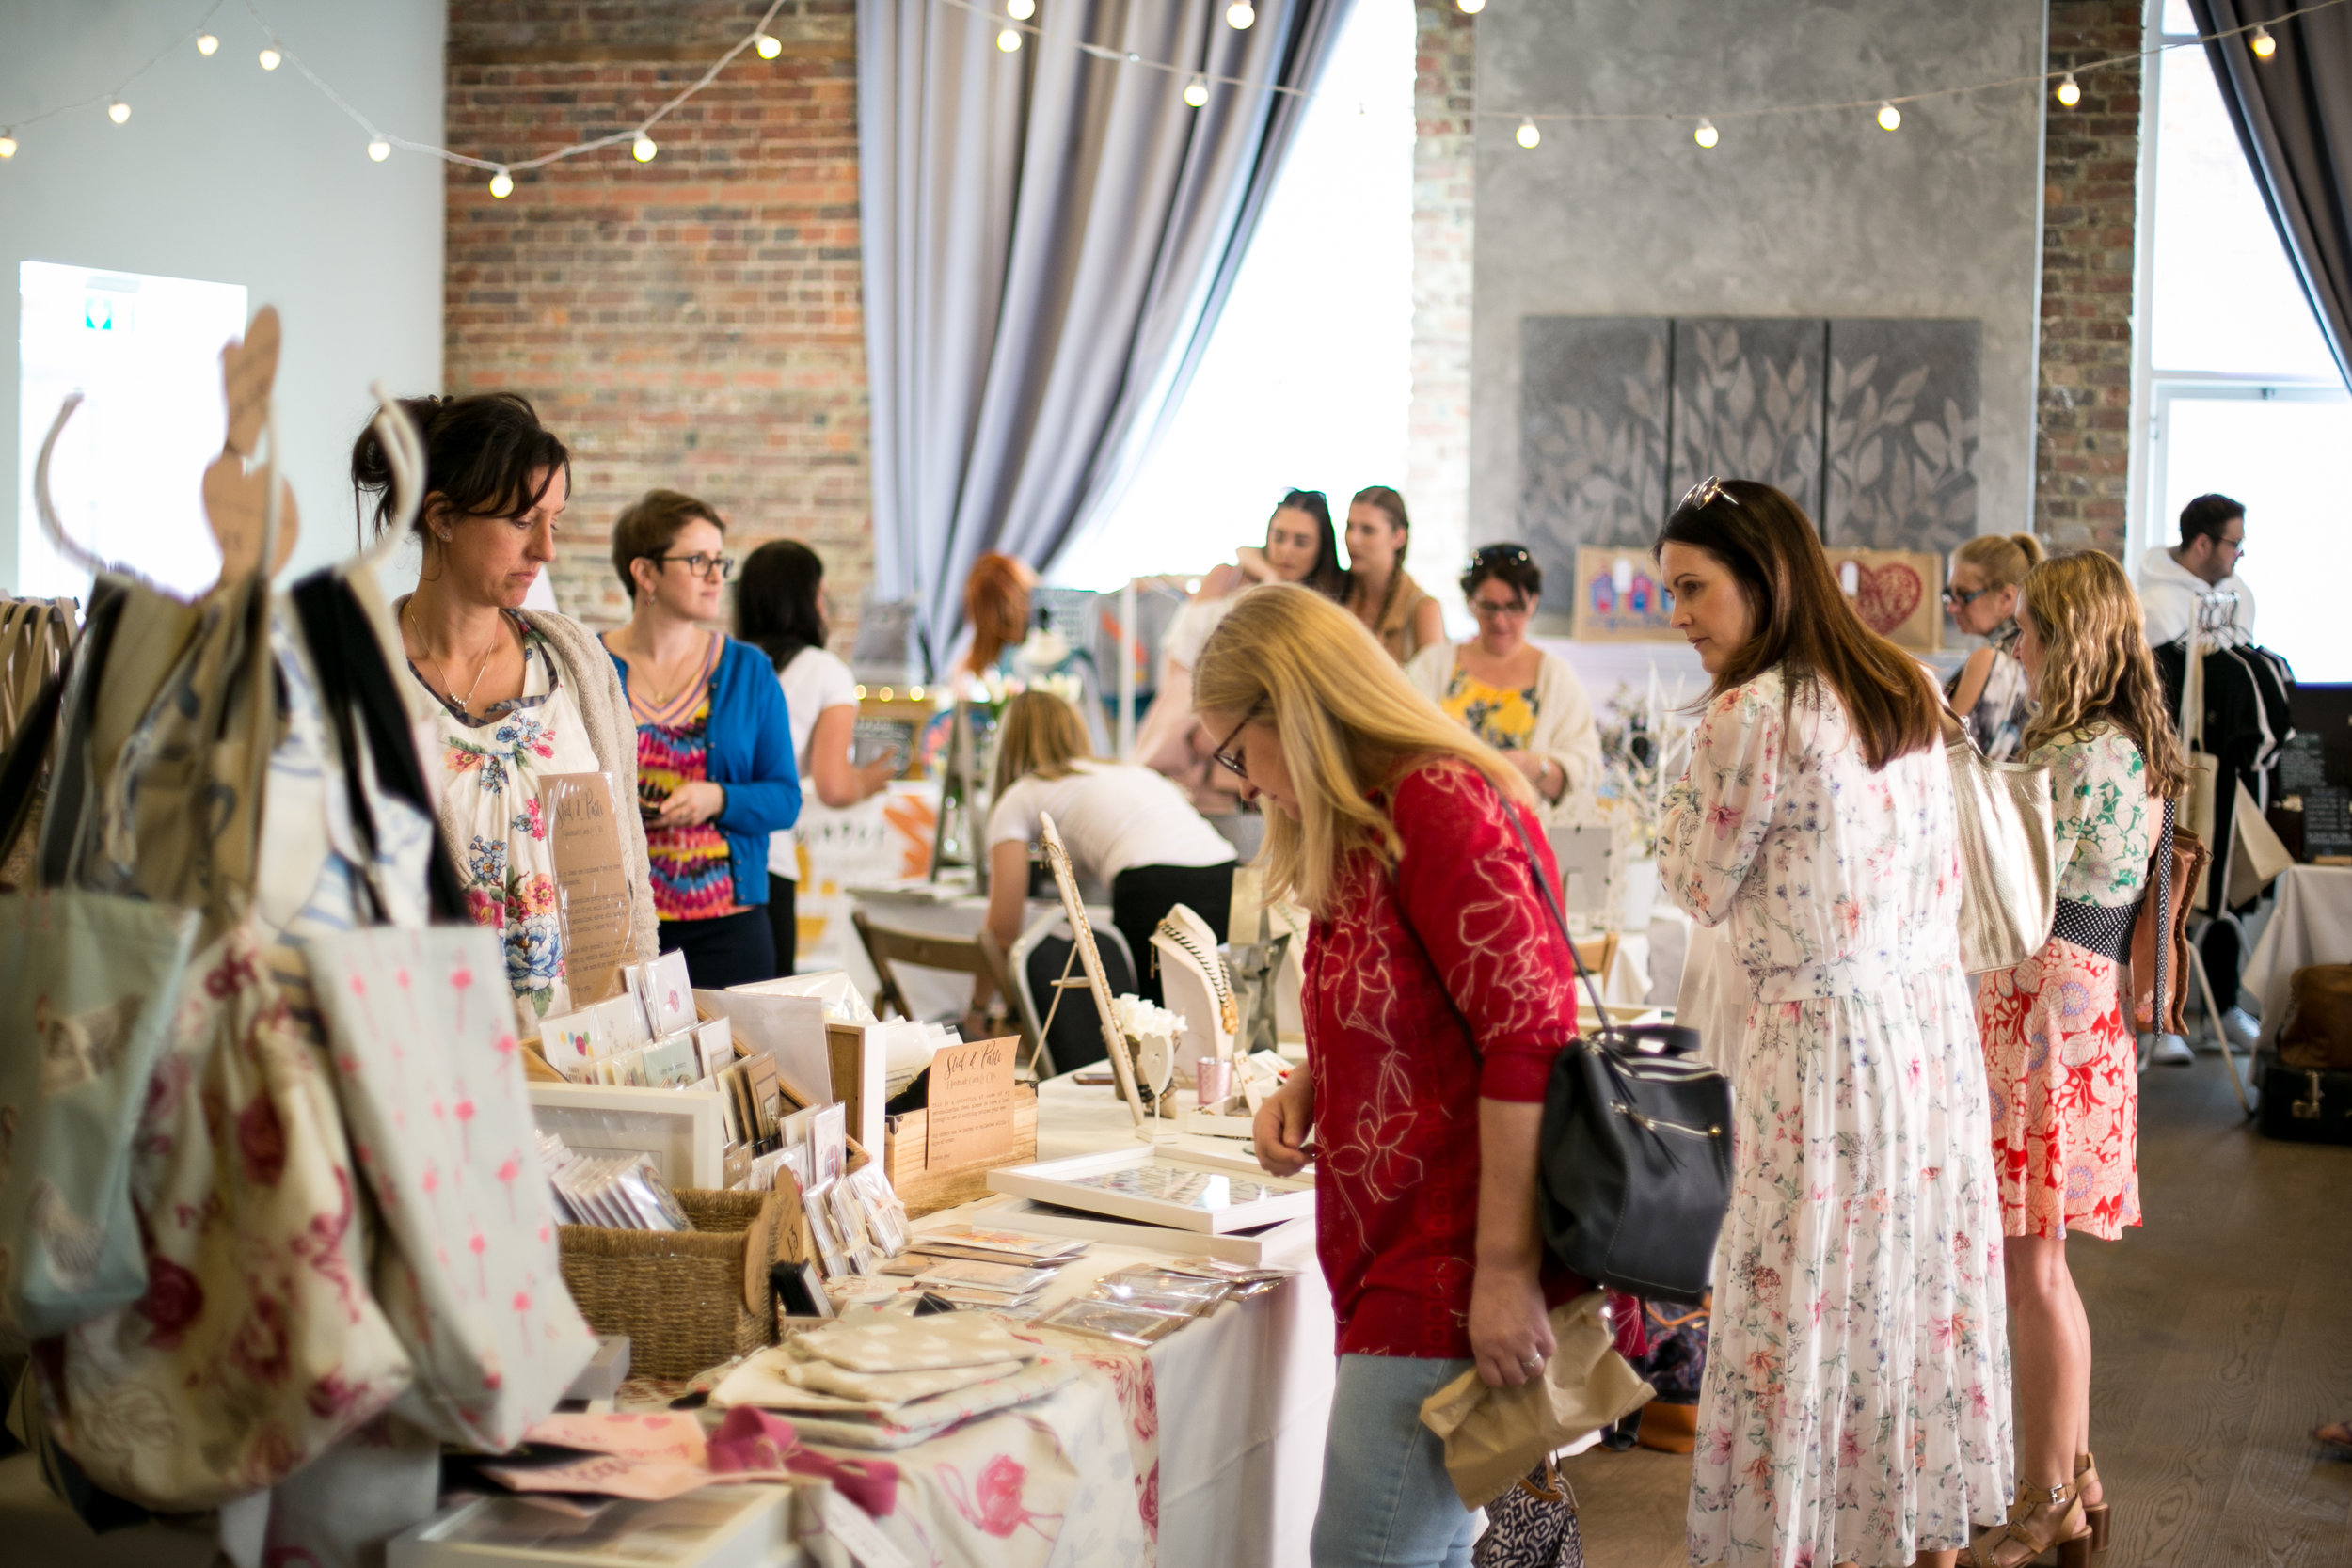 Support-local-pop-up-market-tunbridgewells-kent-craft.jpg